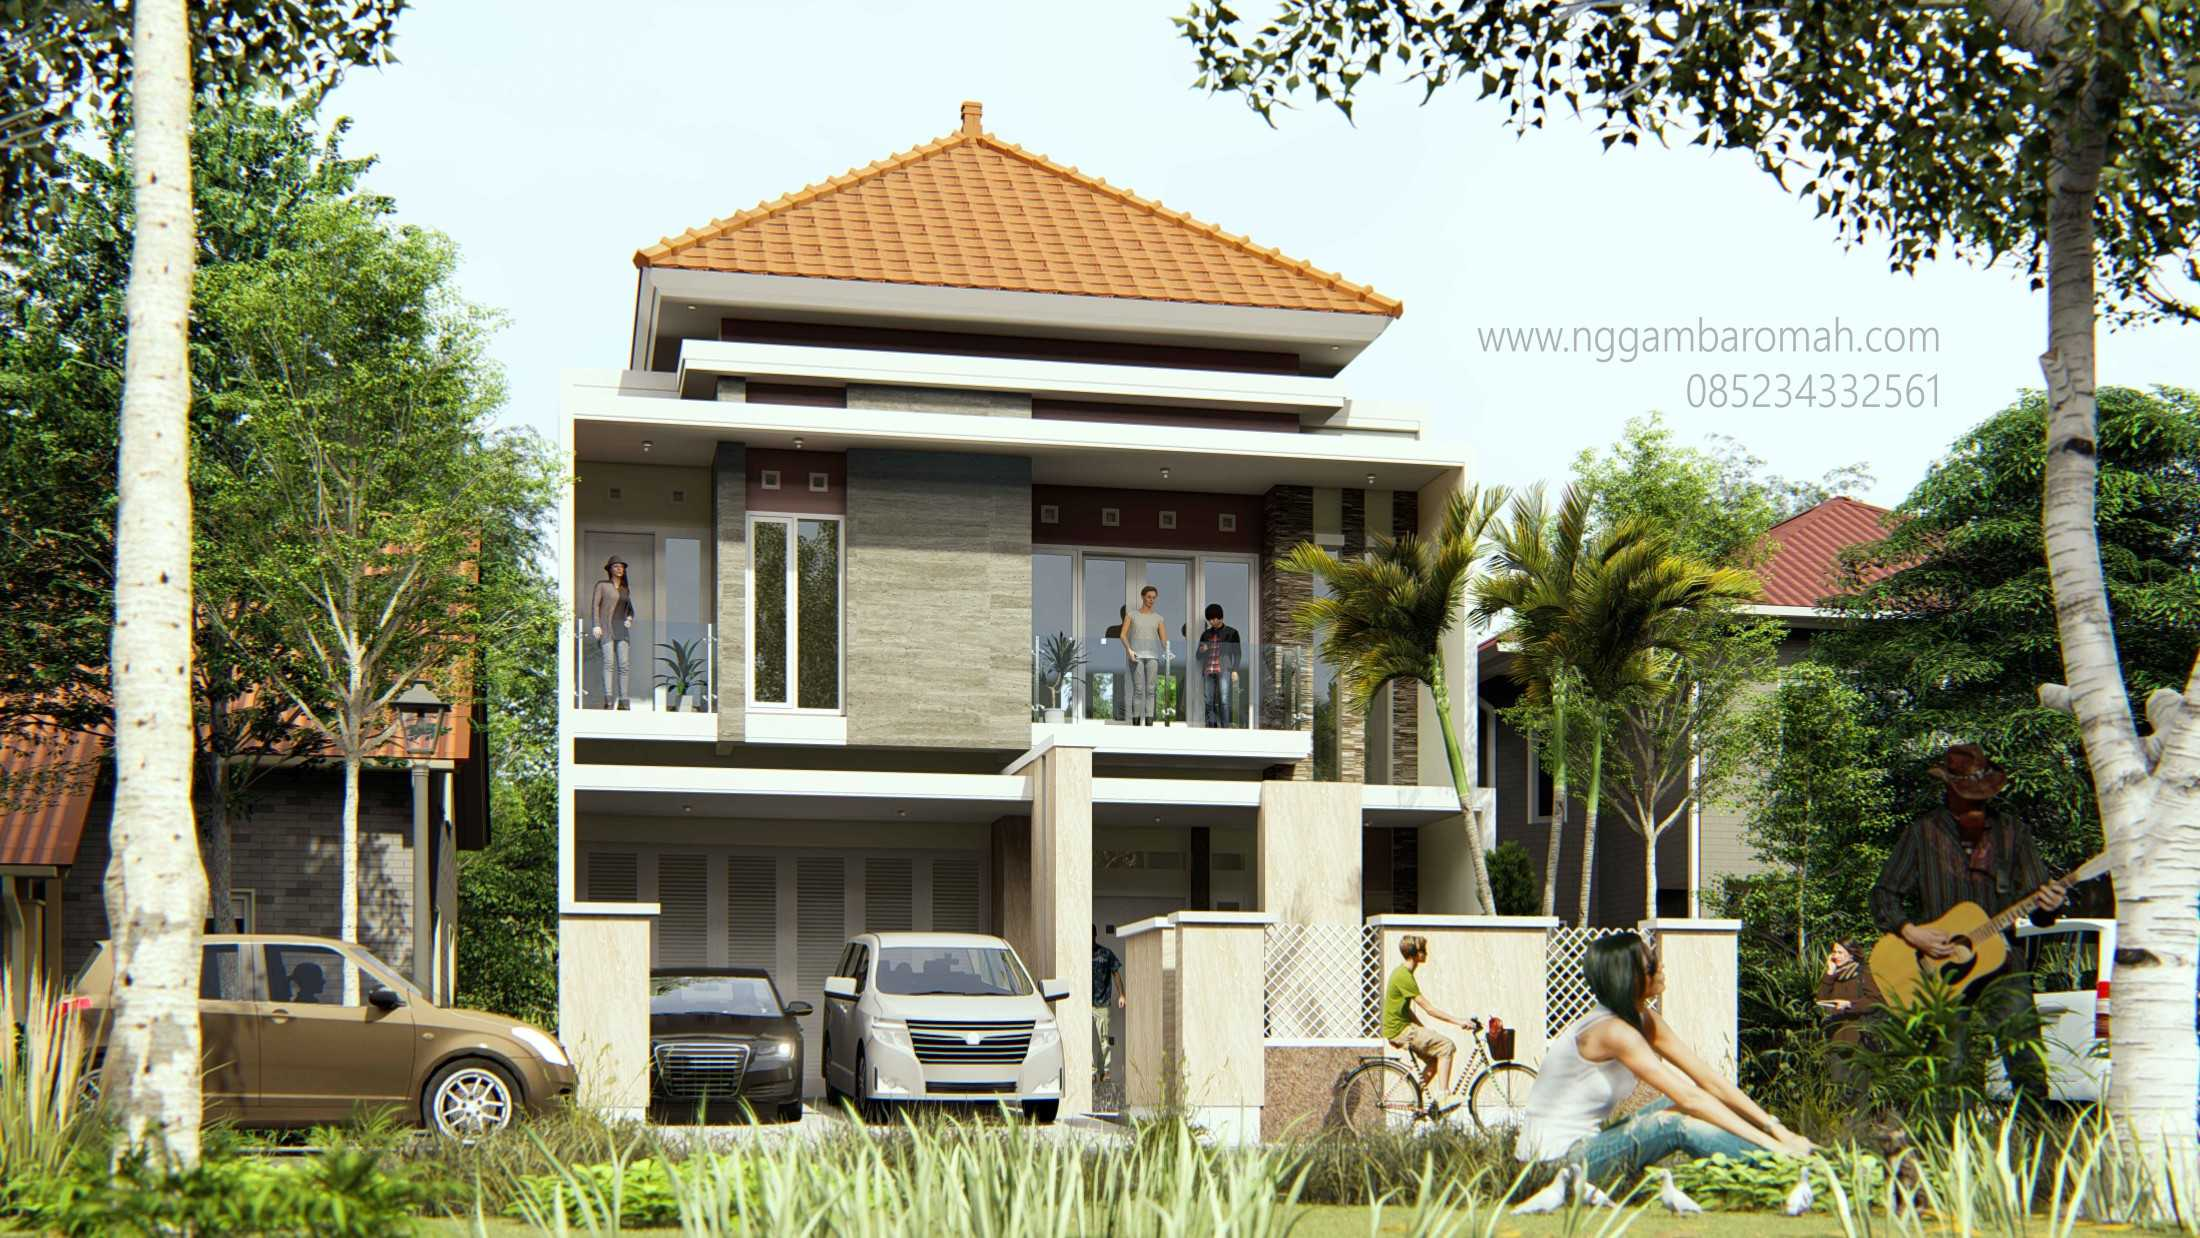 Nggambar Omah | design and build di Jombang